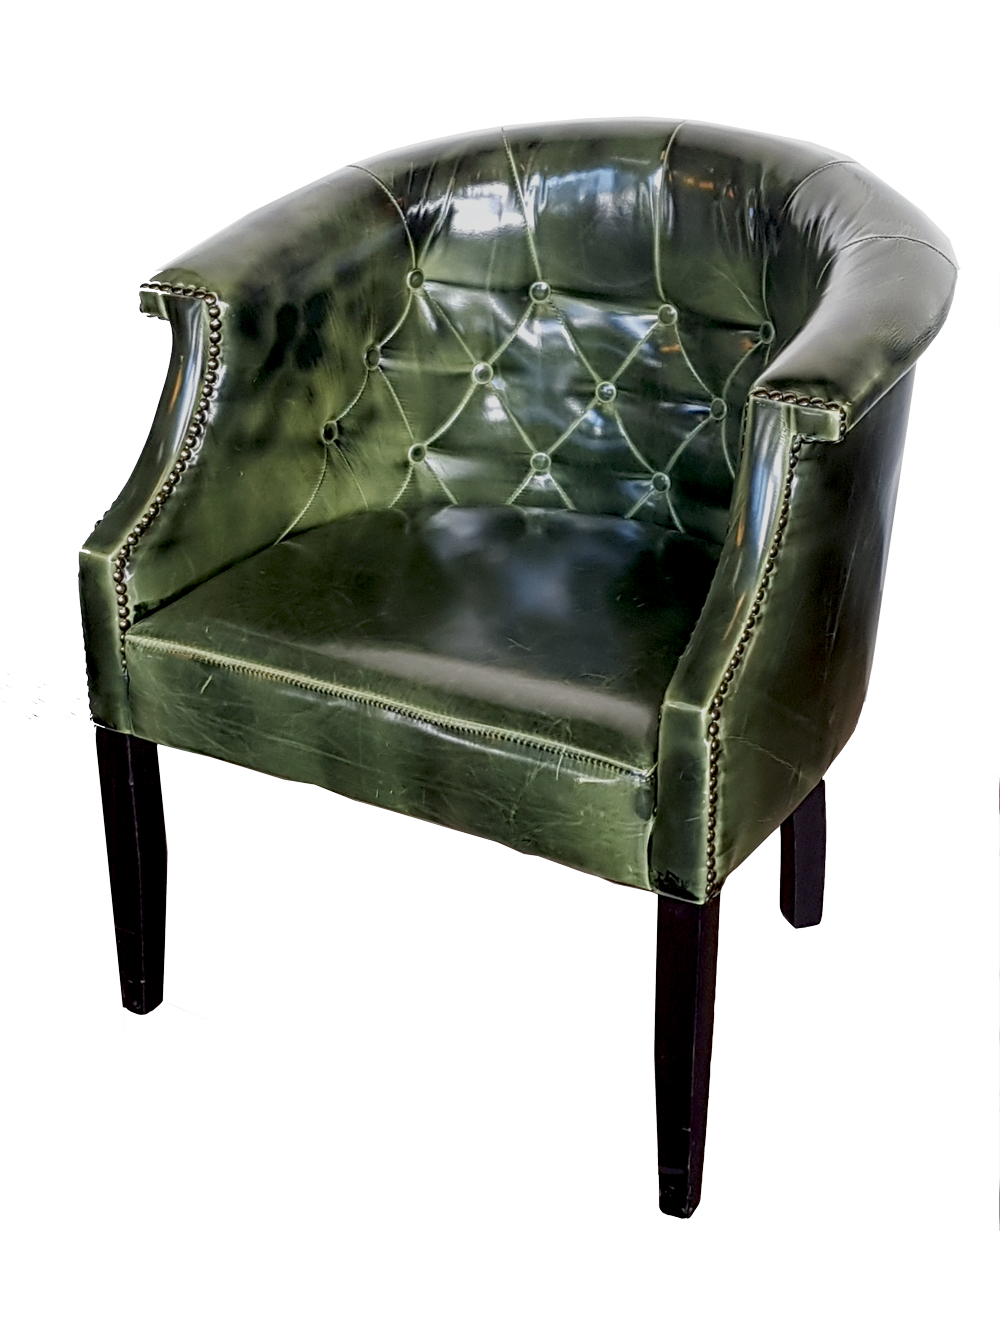 Queen Mirage vooraanzicht - Fauteuil Queen Mirage